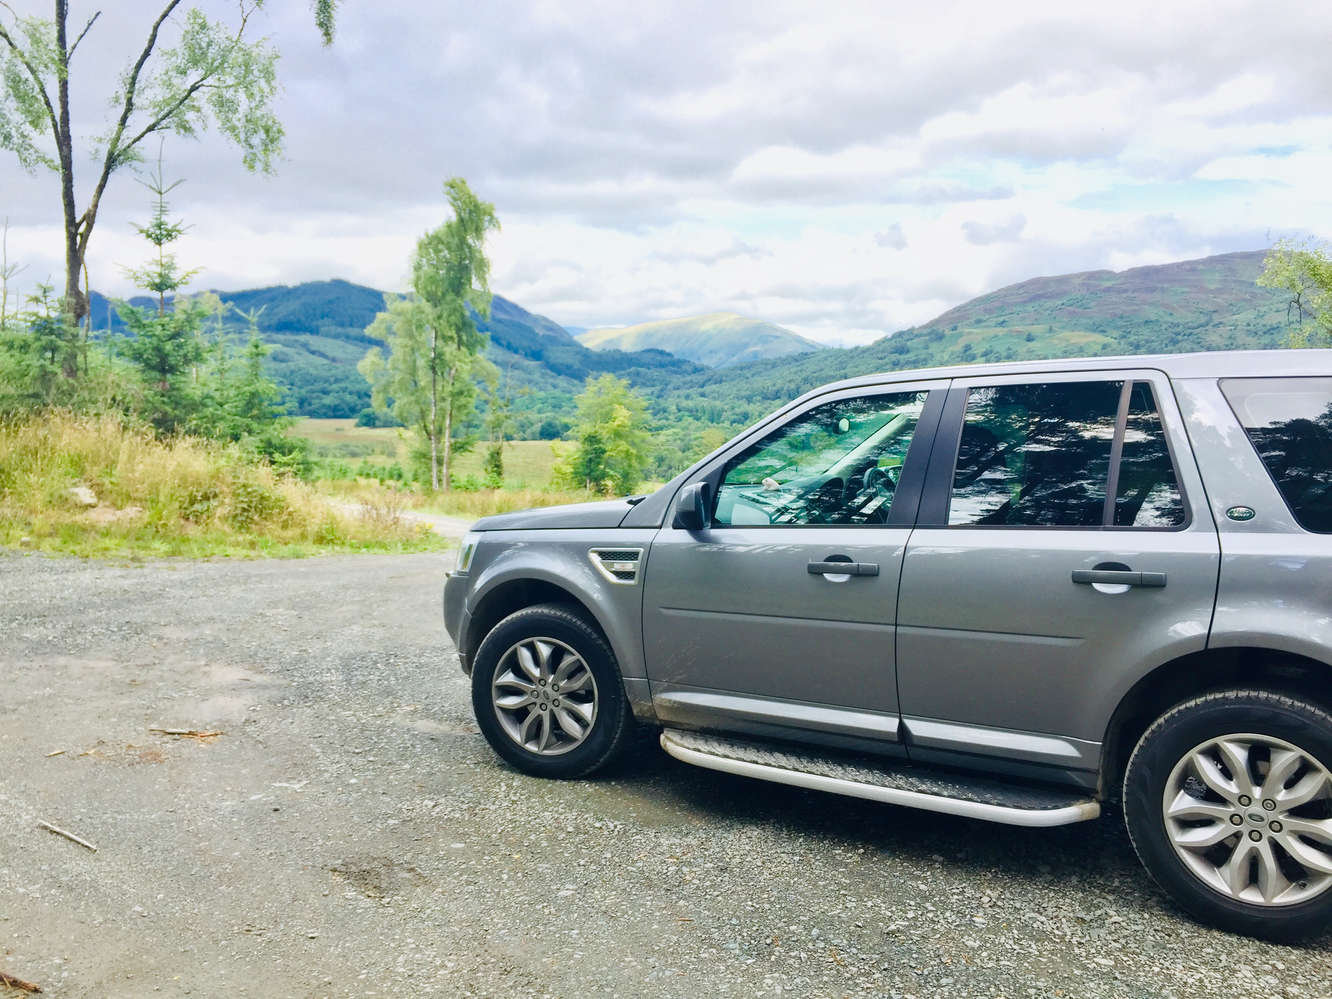 luxury private vehicle off  road during tour in scotland near loch lomond